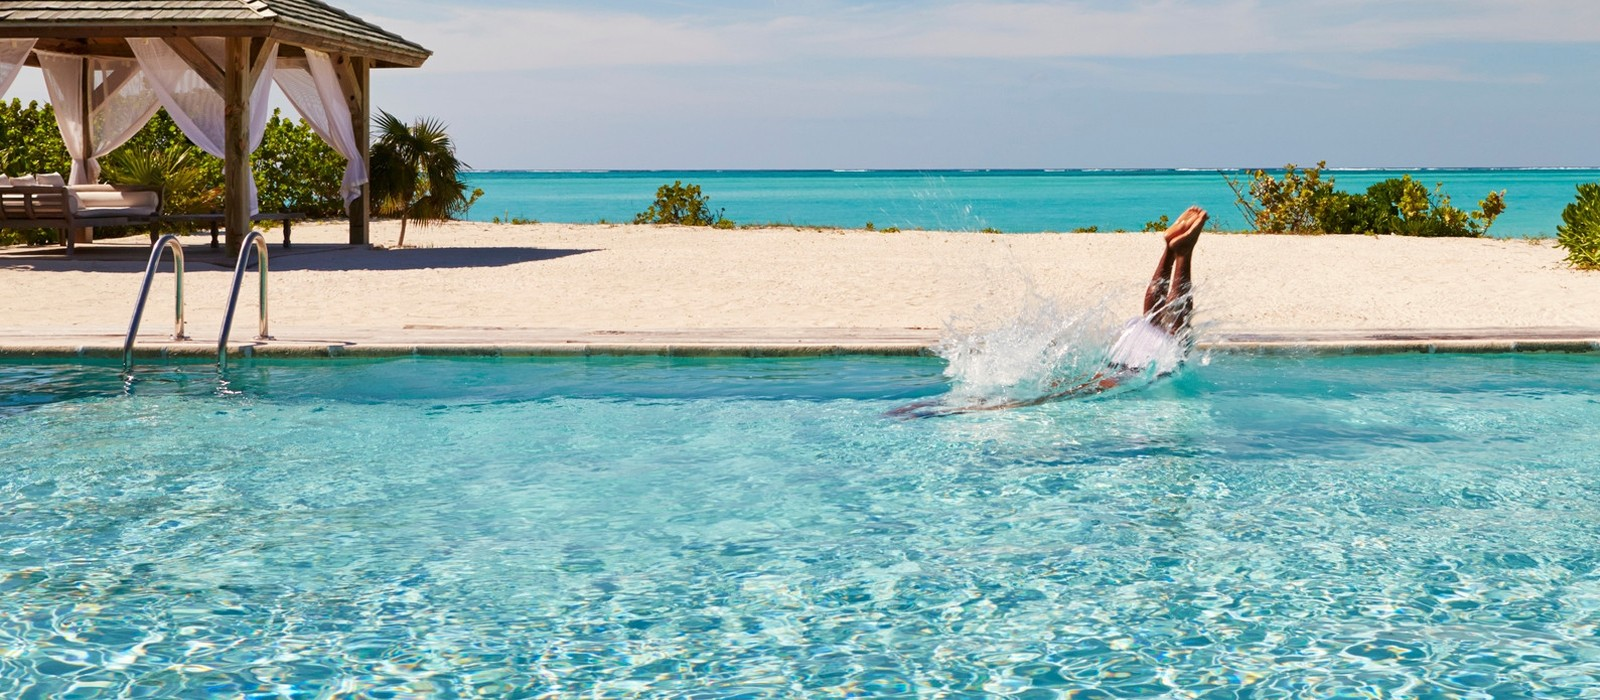 parrot cay by como - turqs and caicos lucury holidays - LARGE Header